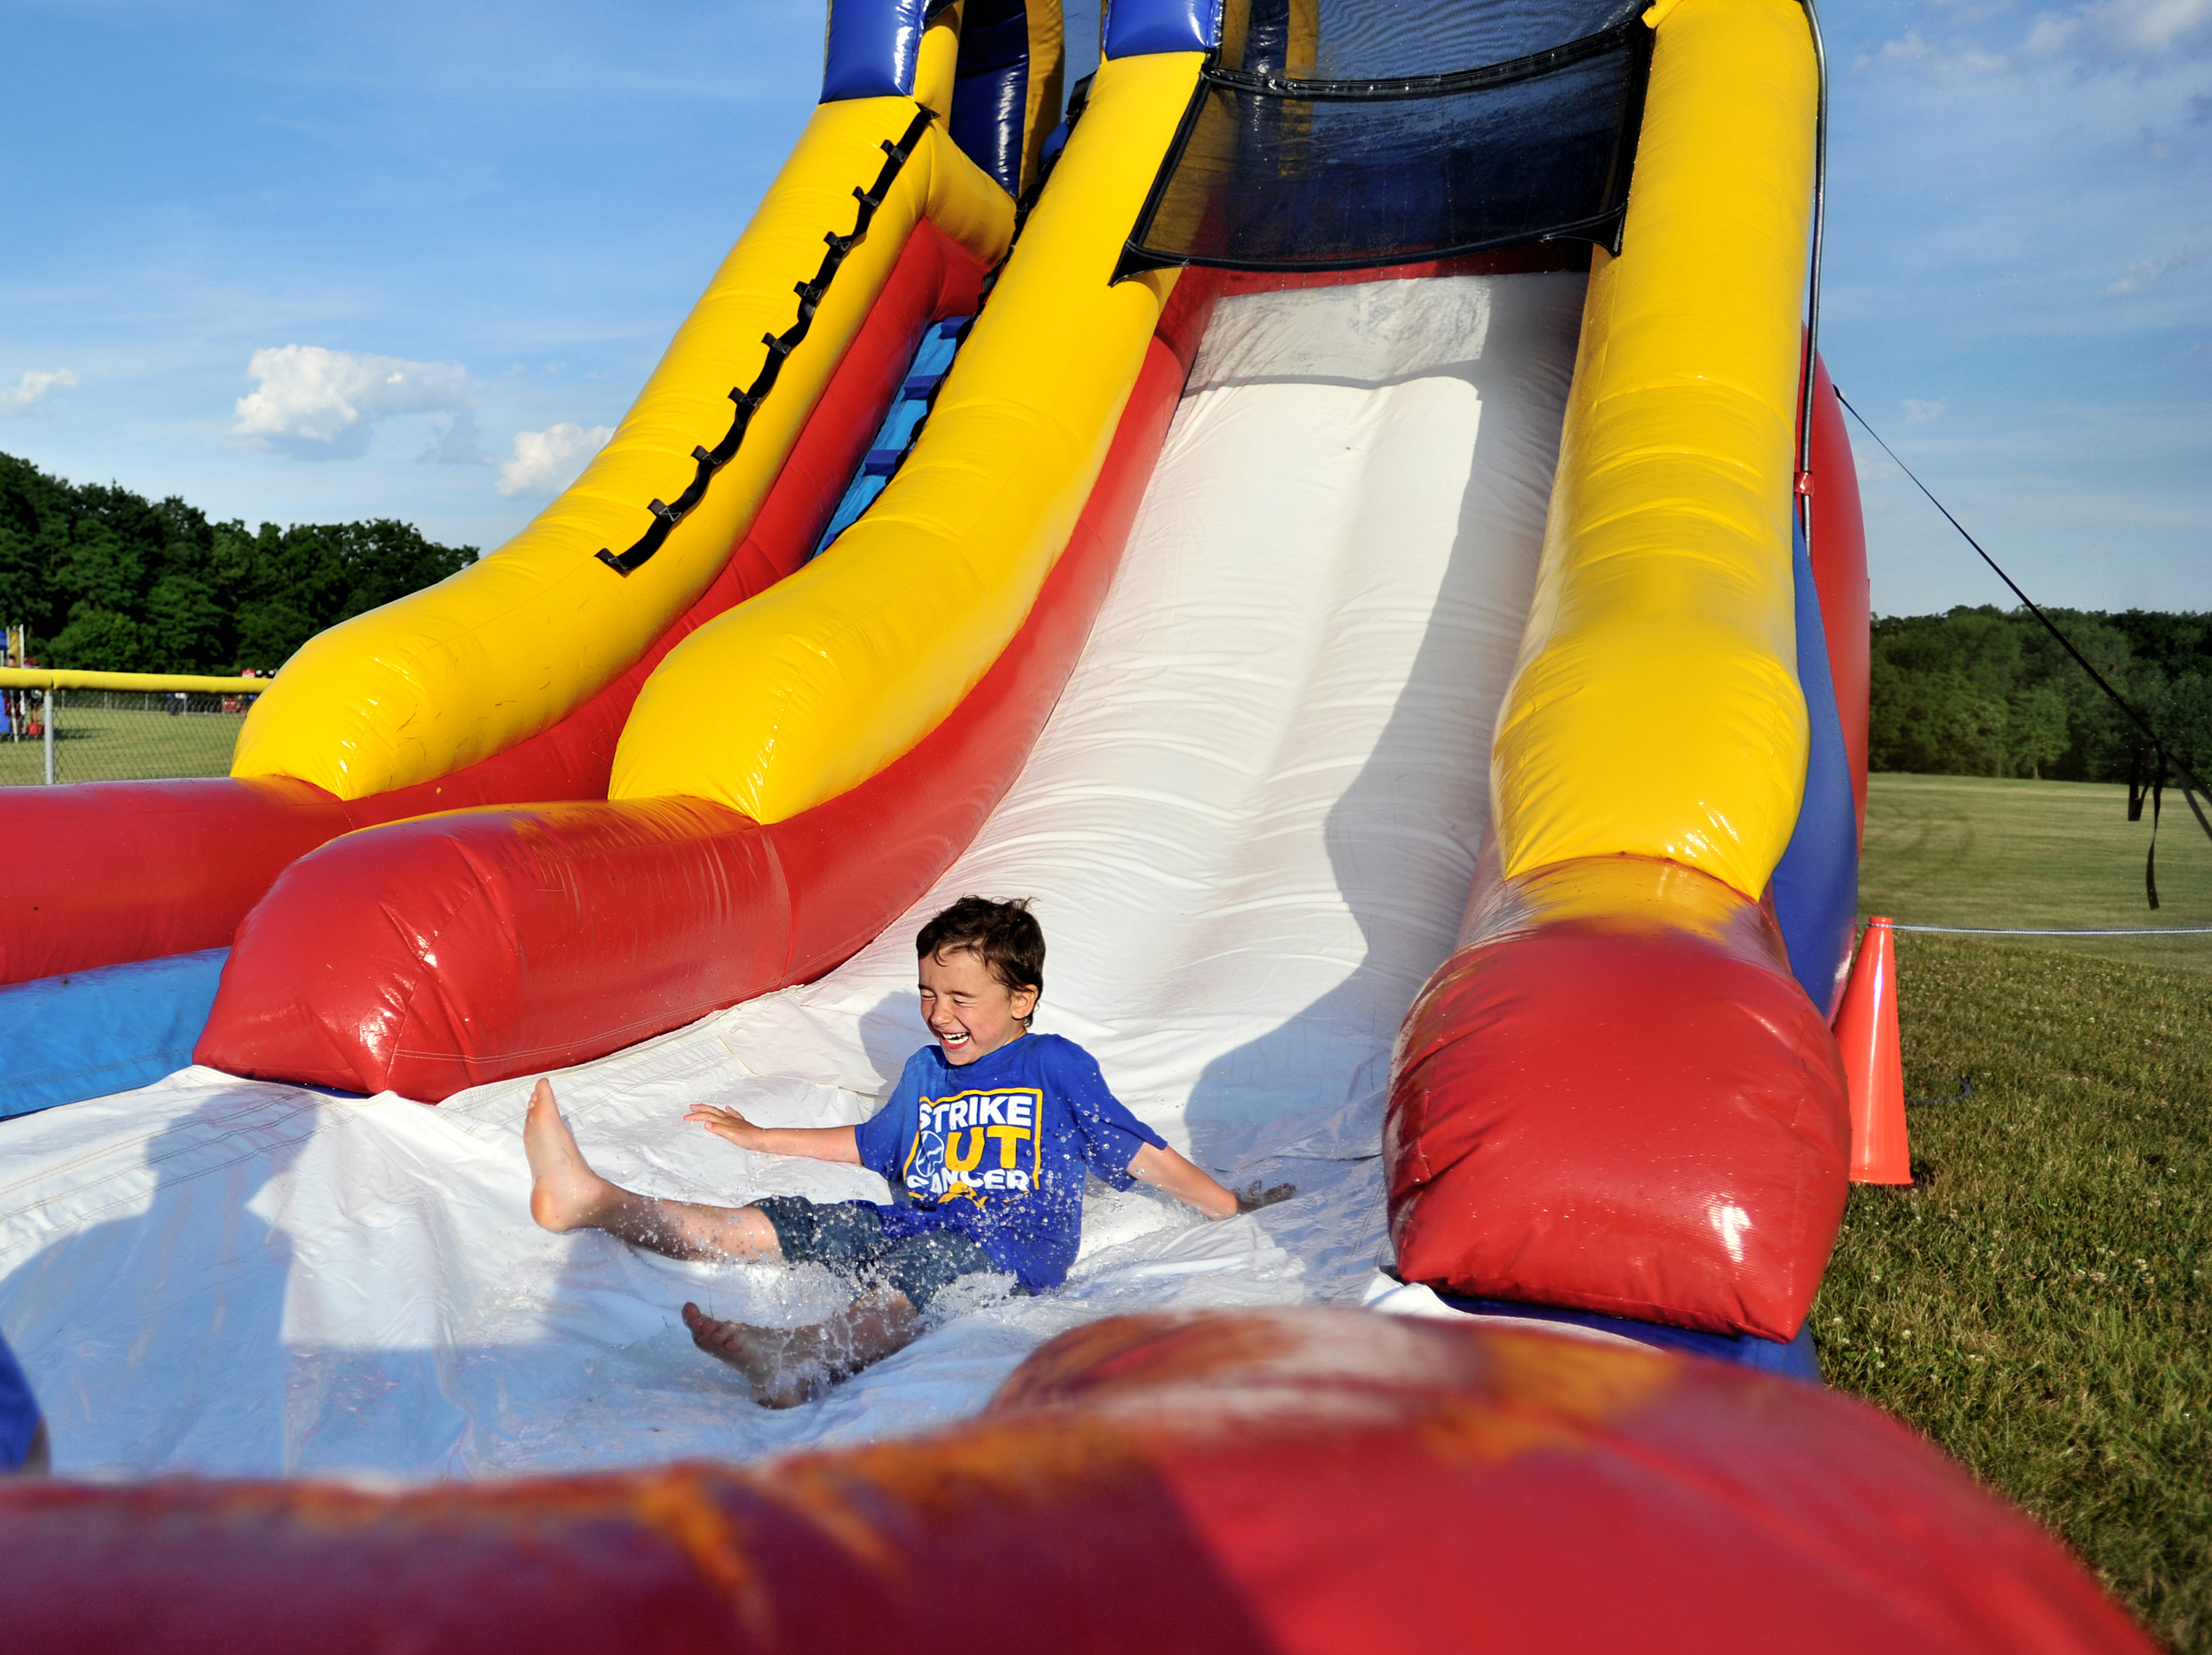 Kaydon Batz, 6, of Womelsdorf splashes into water at the bottom of an inflatable slide at the Strike Out Cancer event in Bernville, PA, on June 19, 2016. (Reading Eagle: Sarah Stier)